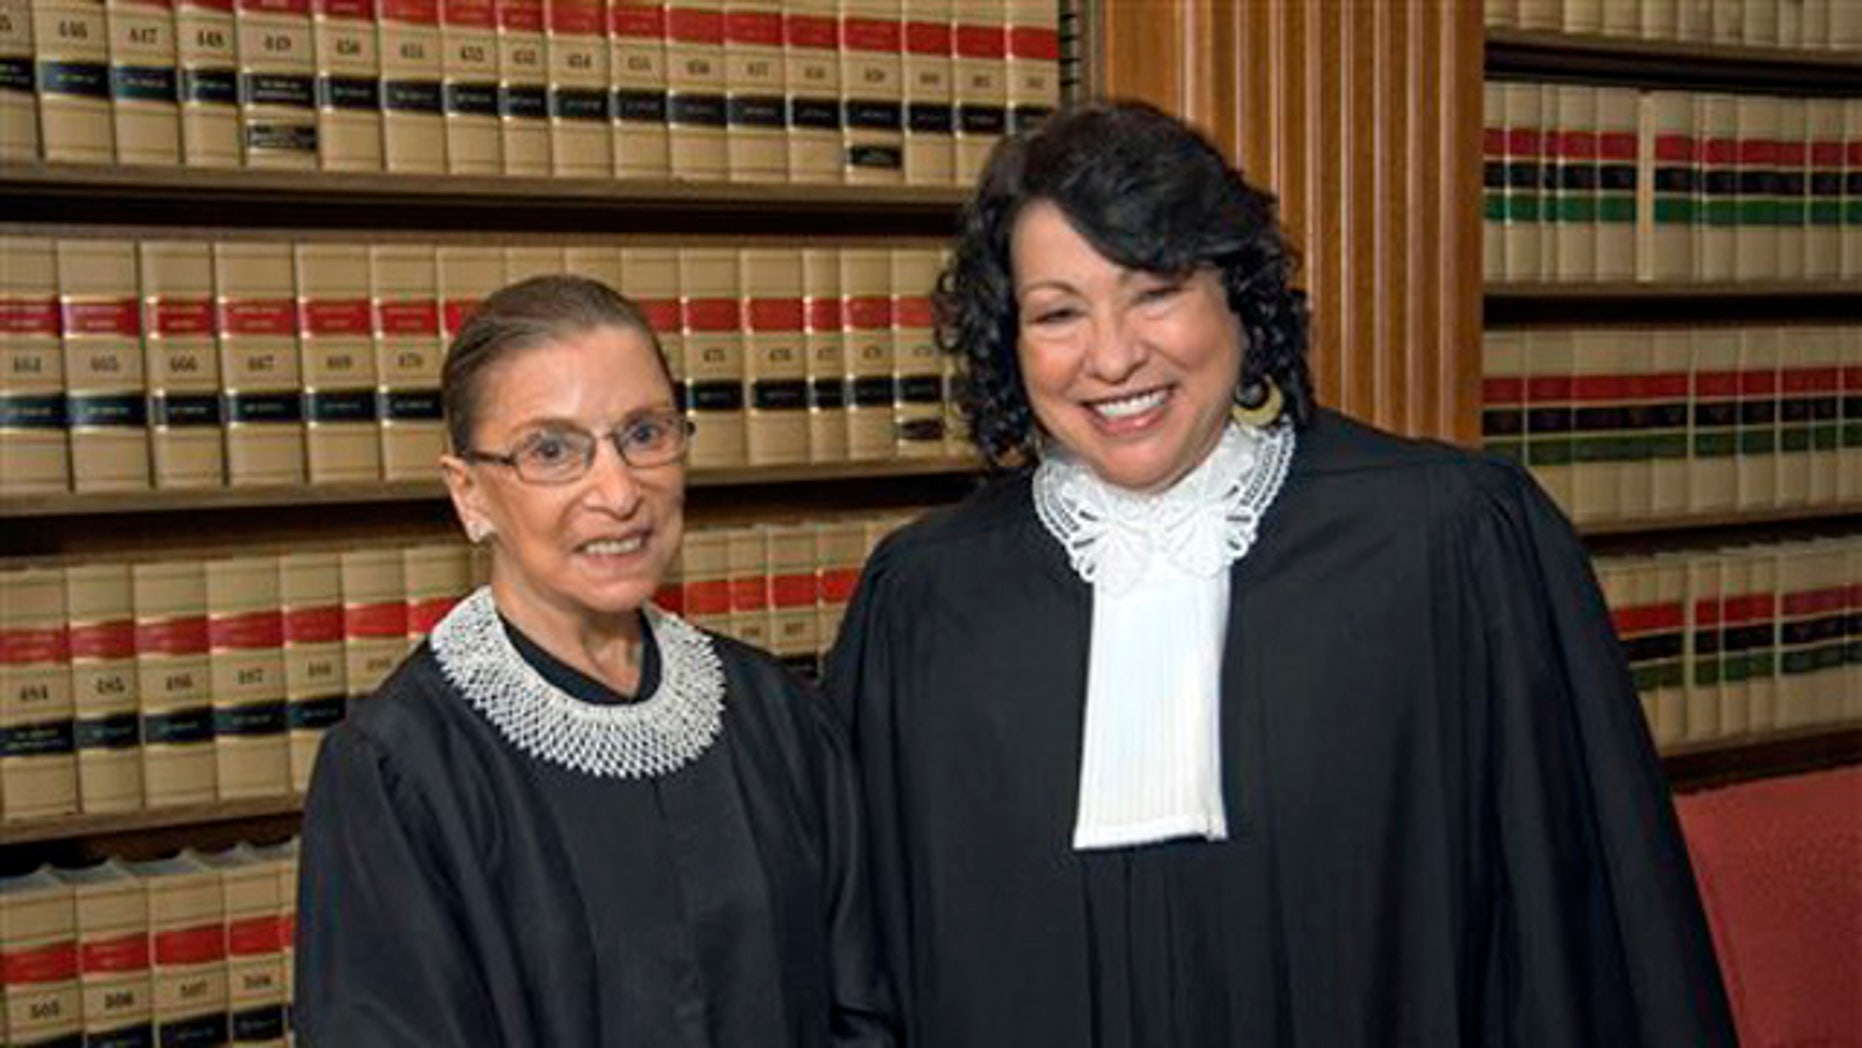 FILE - In this file photo, released Sept. 8, 2009 by the Supreme Court of the United States, Justice Ruth Bader Ginsburg, left, and Justice Sonia Sotomayor pose for a photo in the Justices' Conference Room at the court in Washington.  First Amendment cases top the Supreme Court's docket as it begins a new term with a new justice and three women on the bench for the first time.   (AP Photo/Collection of the Supreme Court of the United States, Steve Petteway, File)